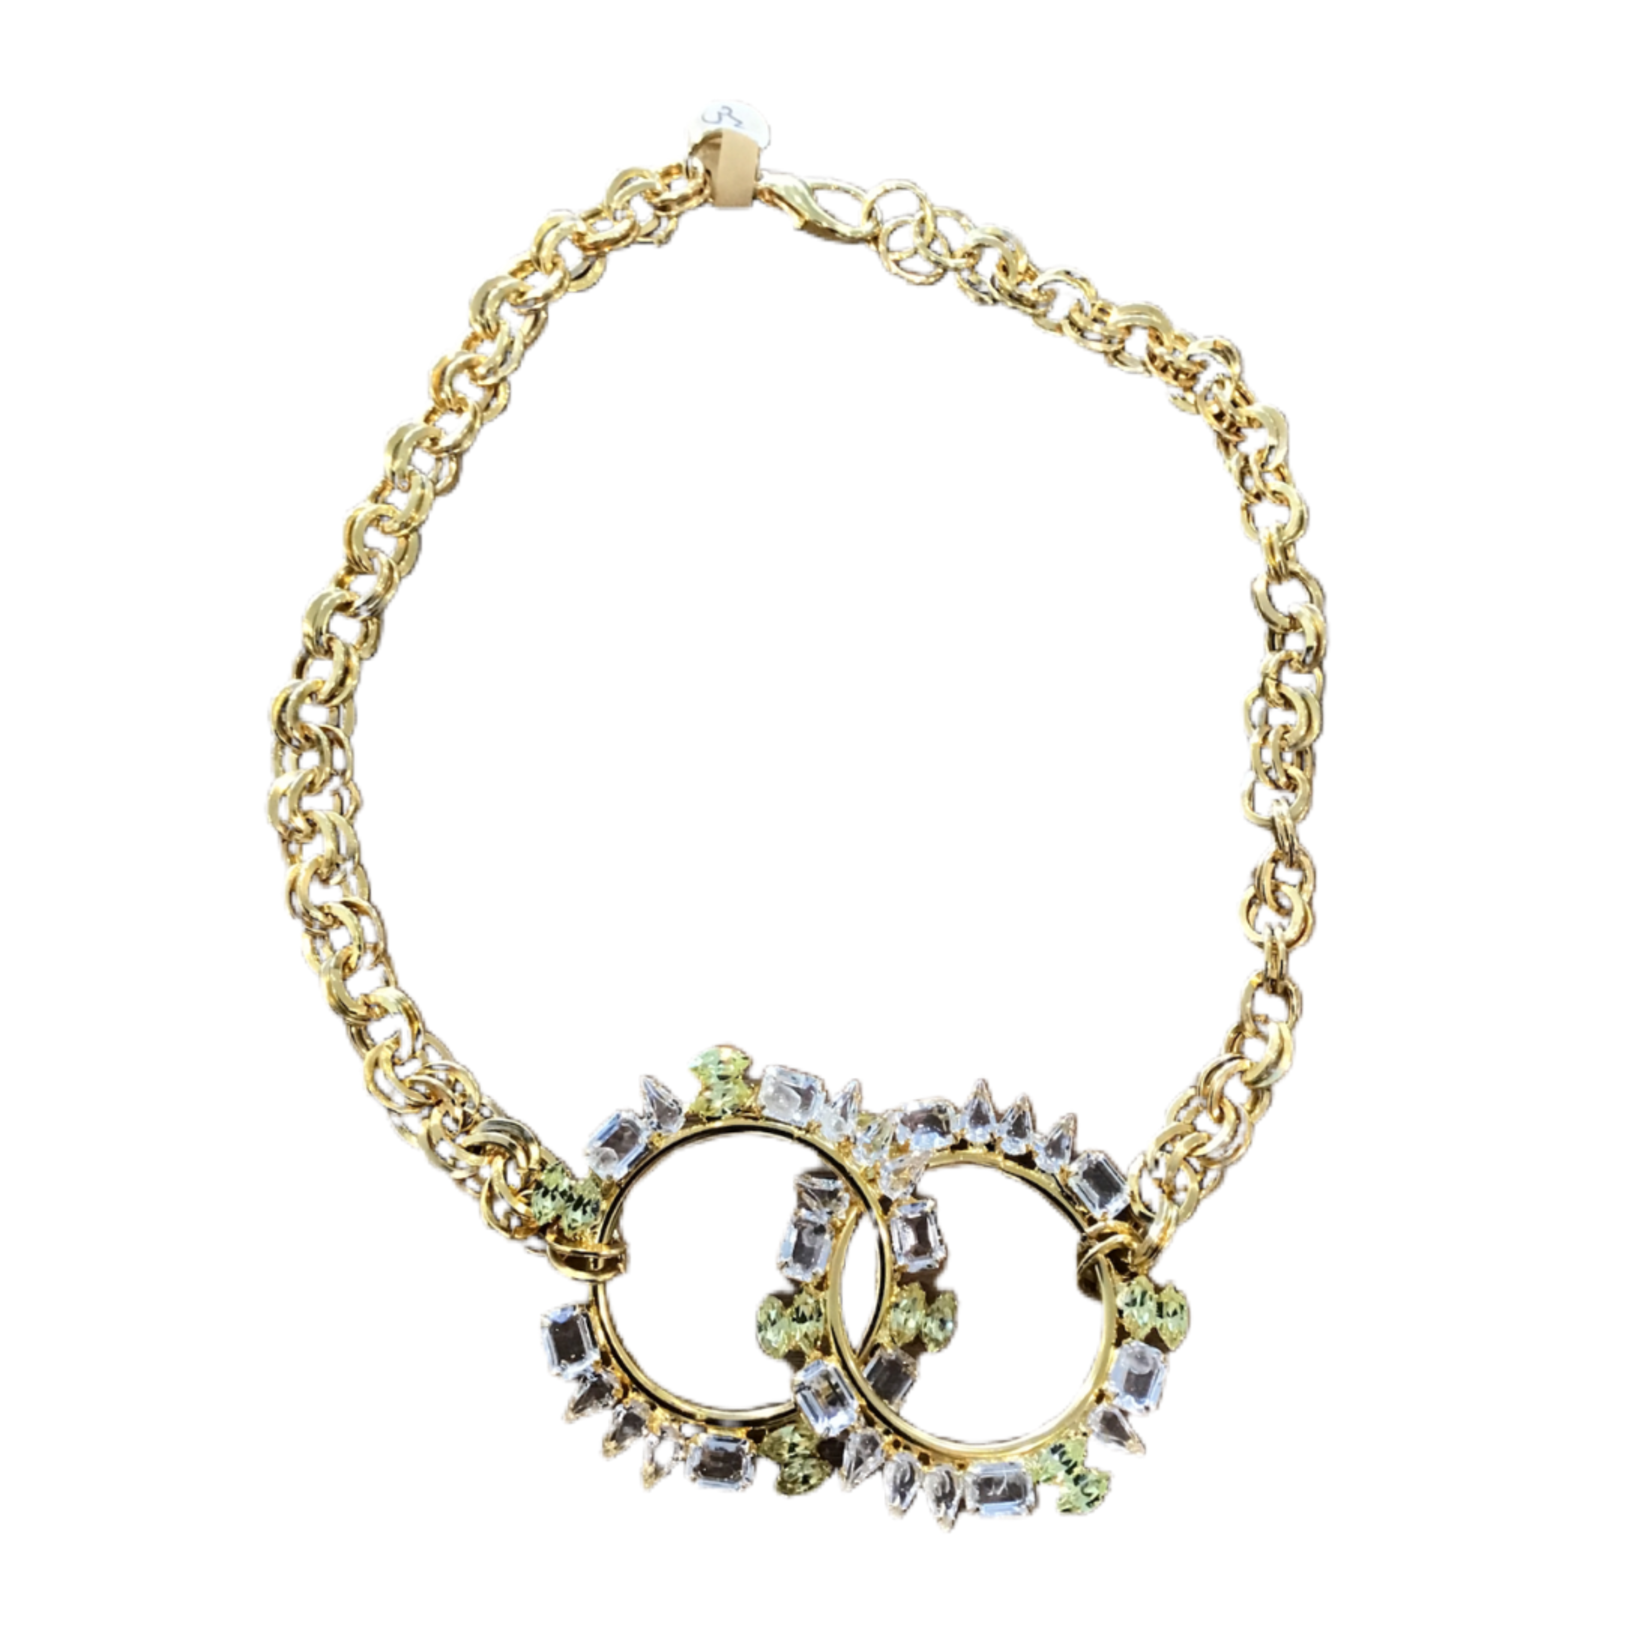 Nicole Romano Gold Crystal Encrusted Linked Ring Necklace